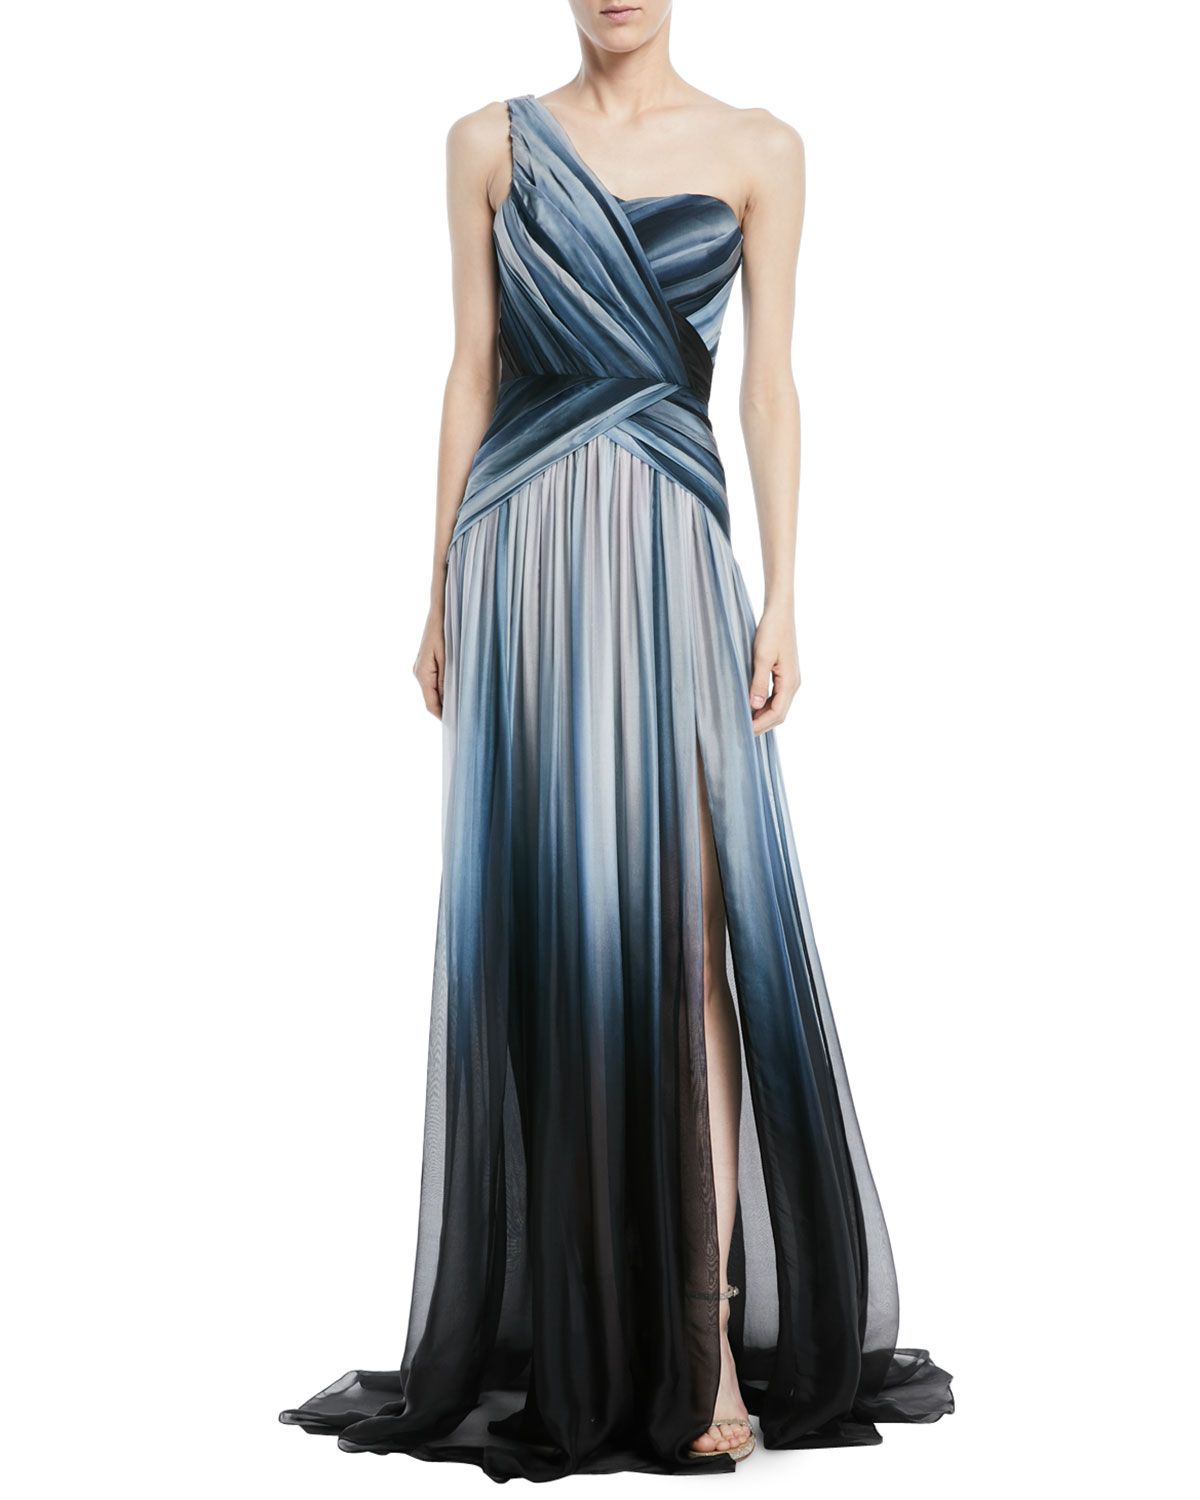 02f99a30376 Pamella Roland One-Shoulder Ombre-Printed Chiffon Evening Gown ...